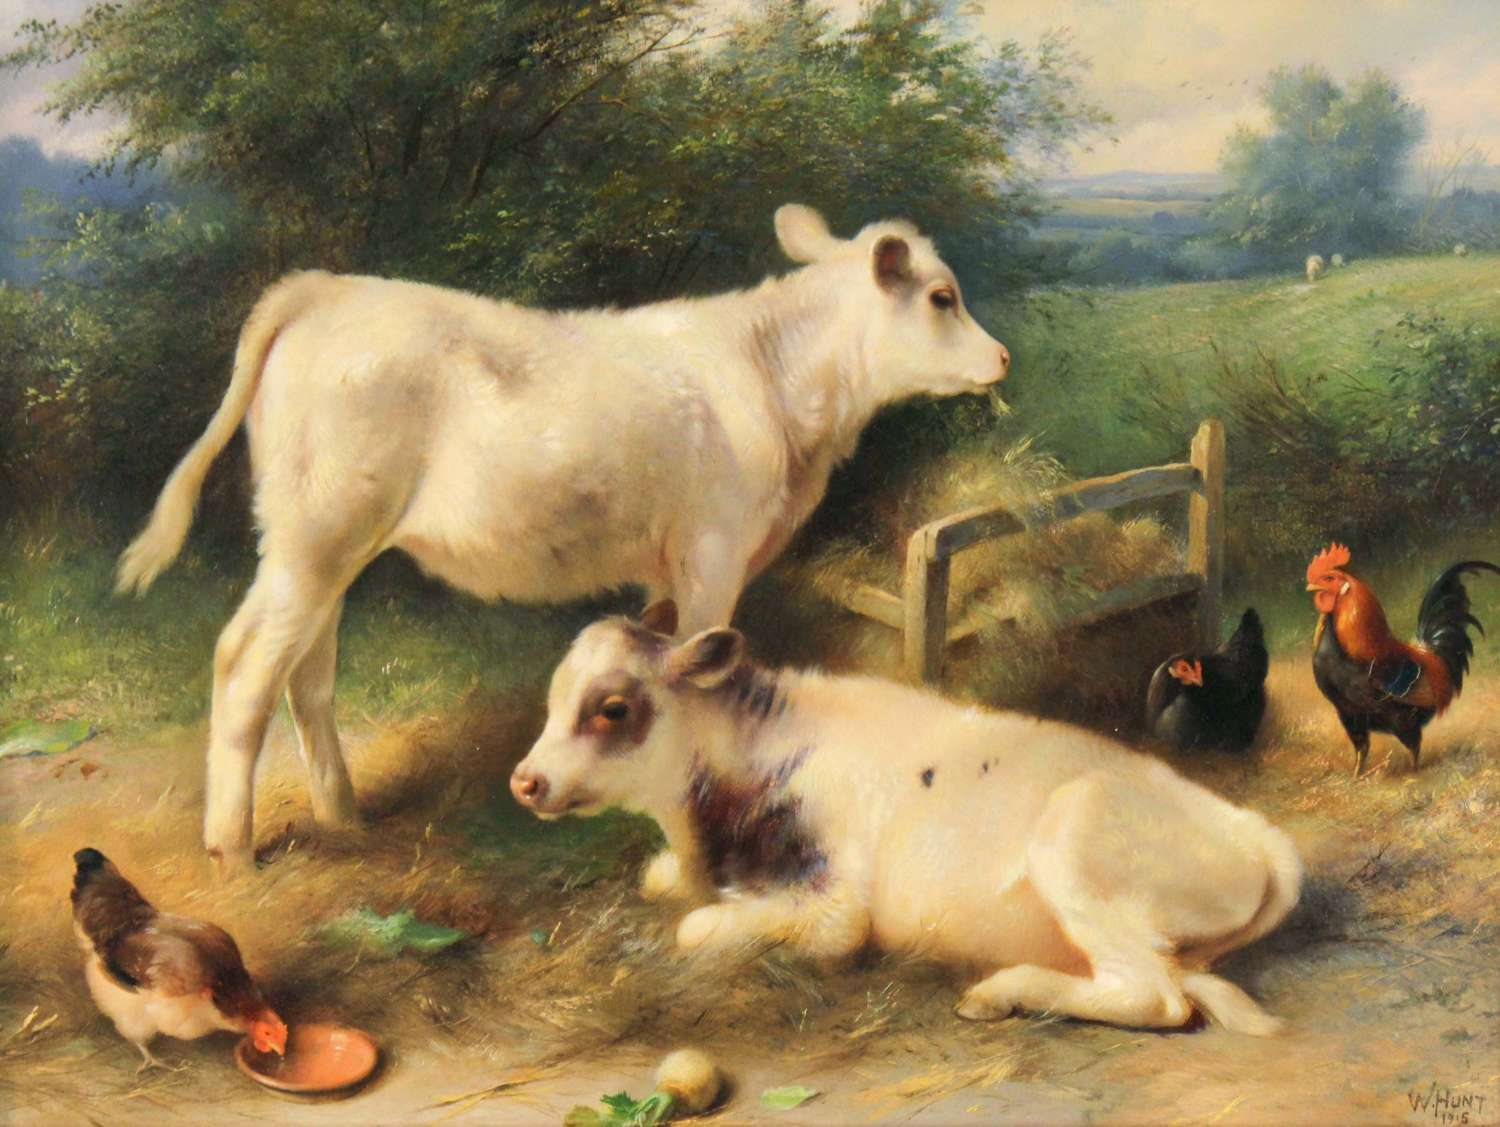 WALTER HUNT (1861–1941) Oil on Canvas of Chicken and Calves